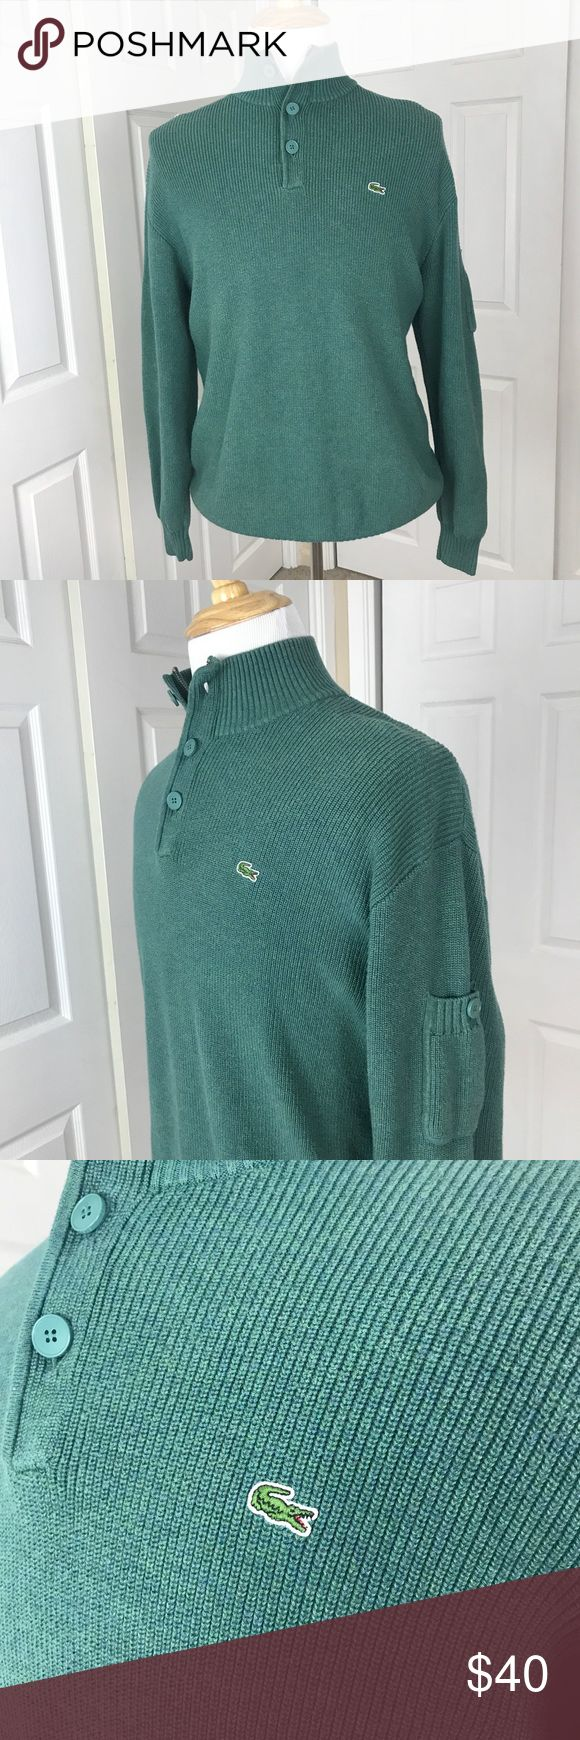 Mens heavyweight Lacoste 1/2 jumper sweater XL 7 Excellent condition! Please see the photos I have attached.   If you need measurements feel free to ask!  I am open to reasonable offers and I always ship out the item within 1 business day! Lacoste Sweaters Zip Up